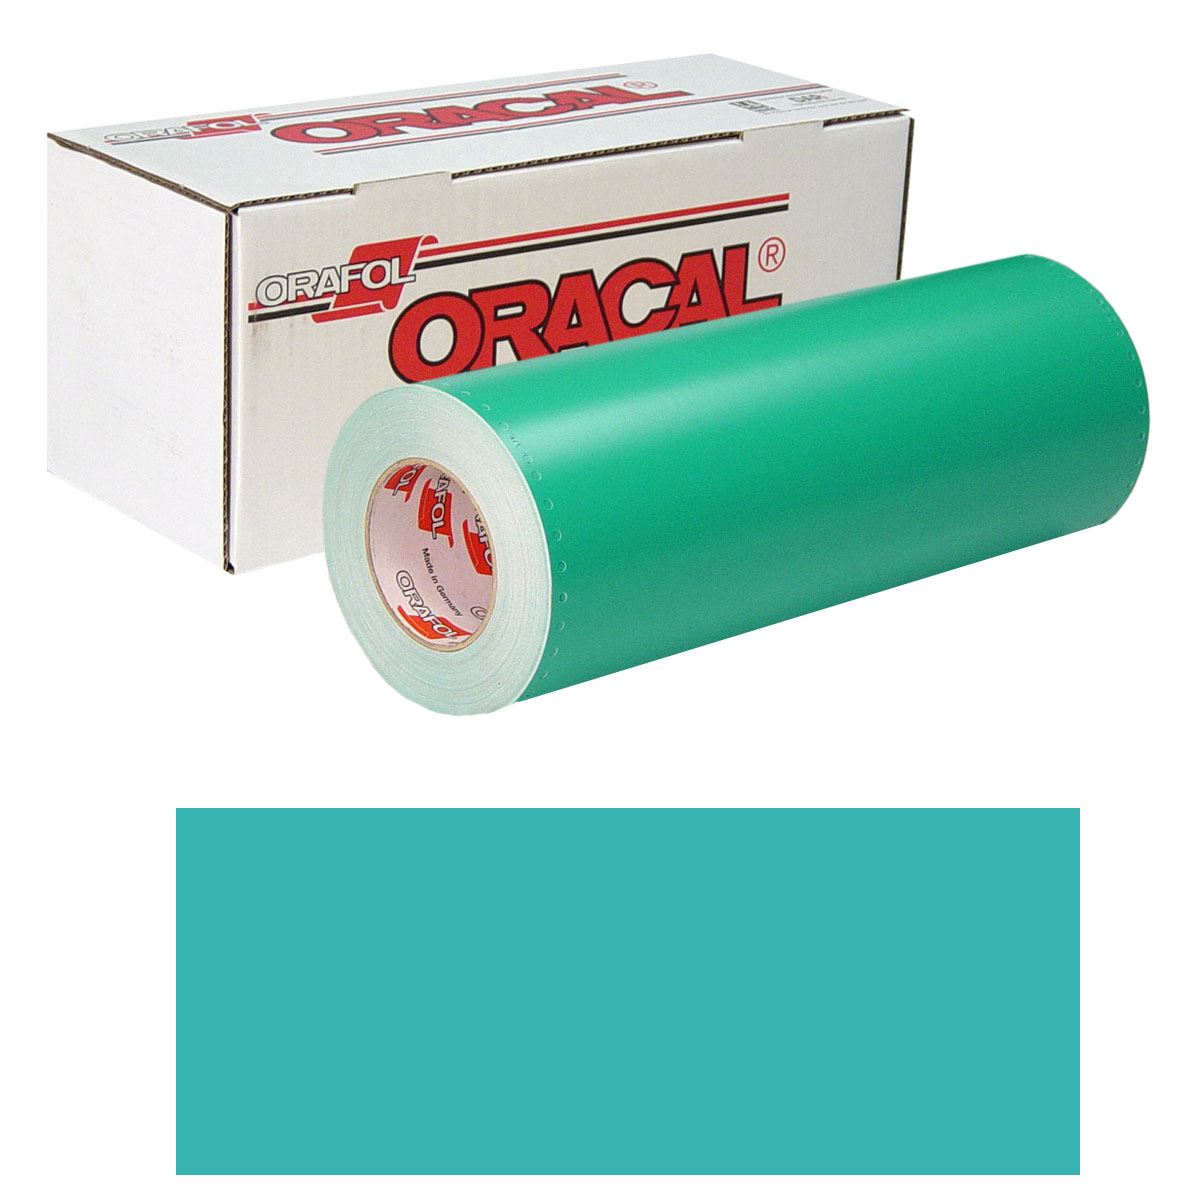 ORACAL 8500 Unp 24In X 50Yd 054 Turquoise